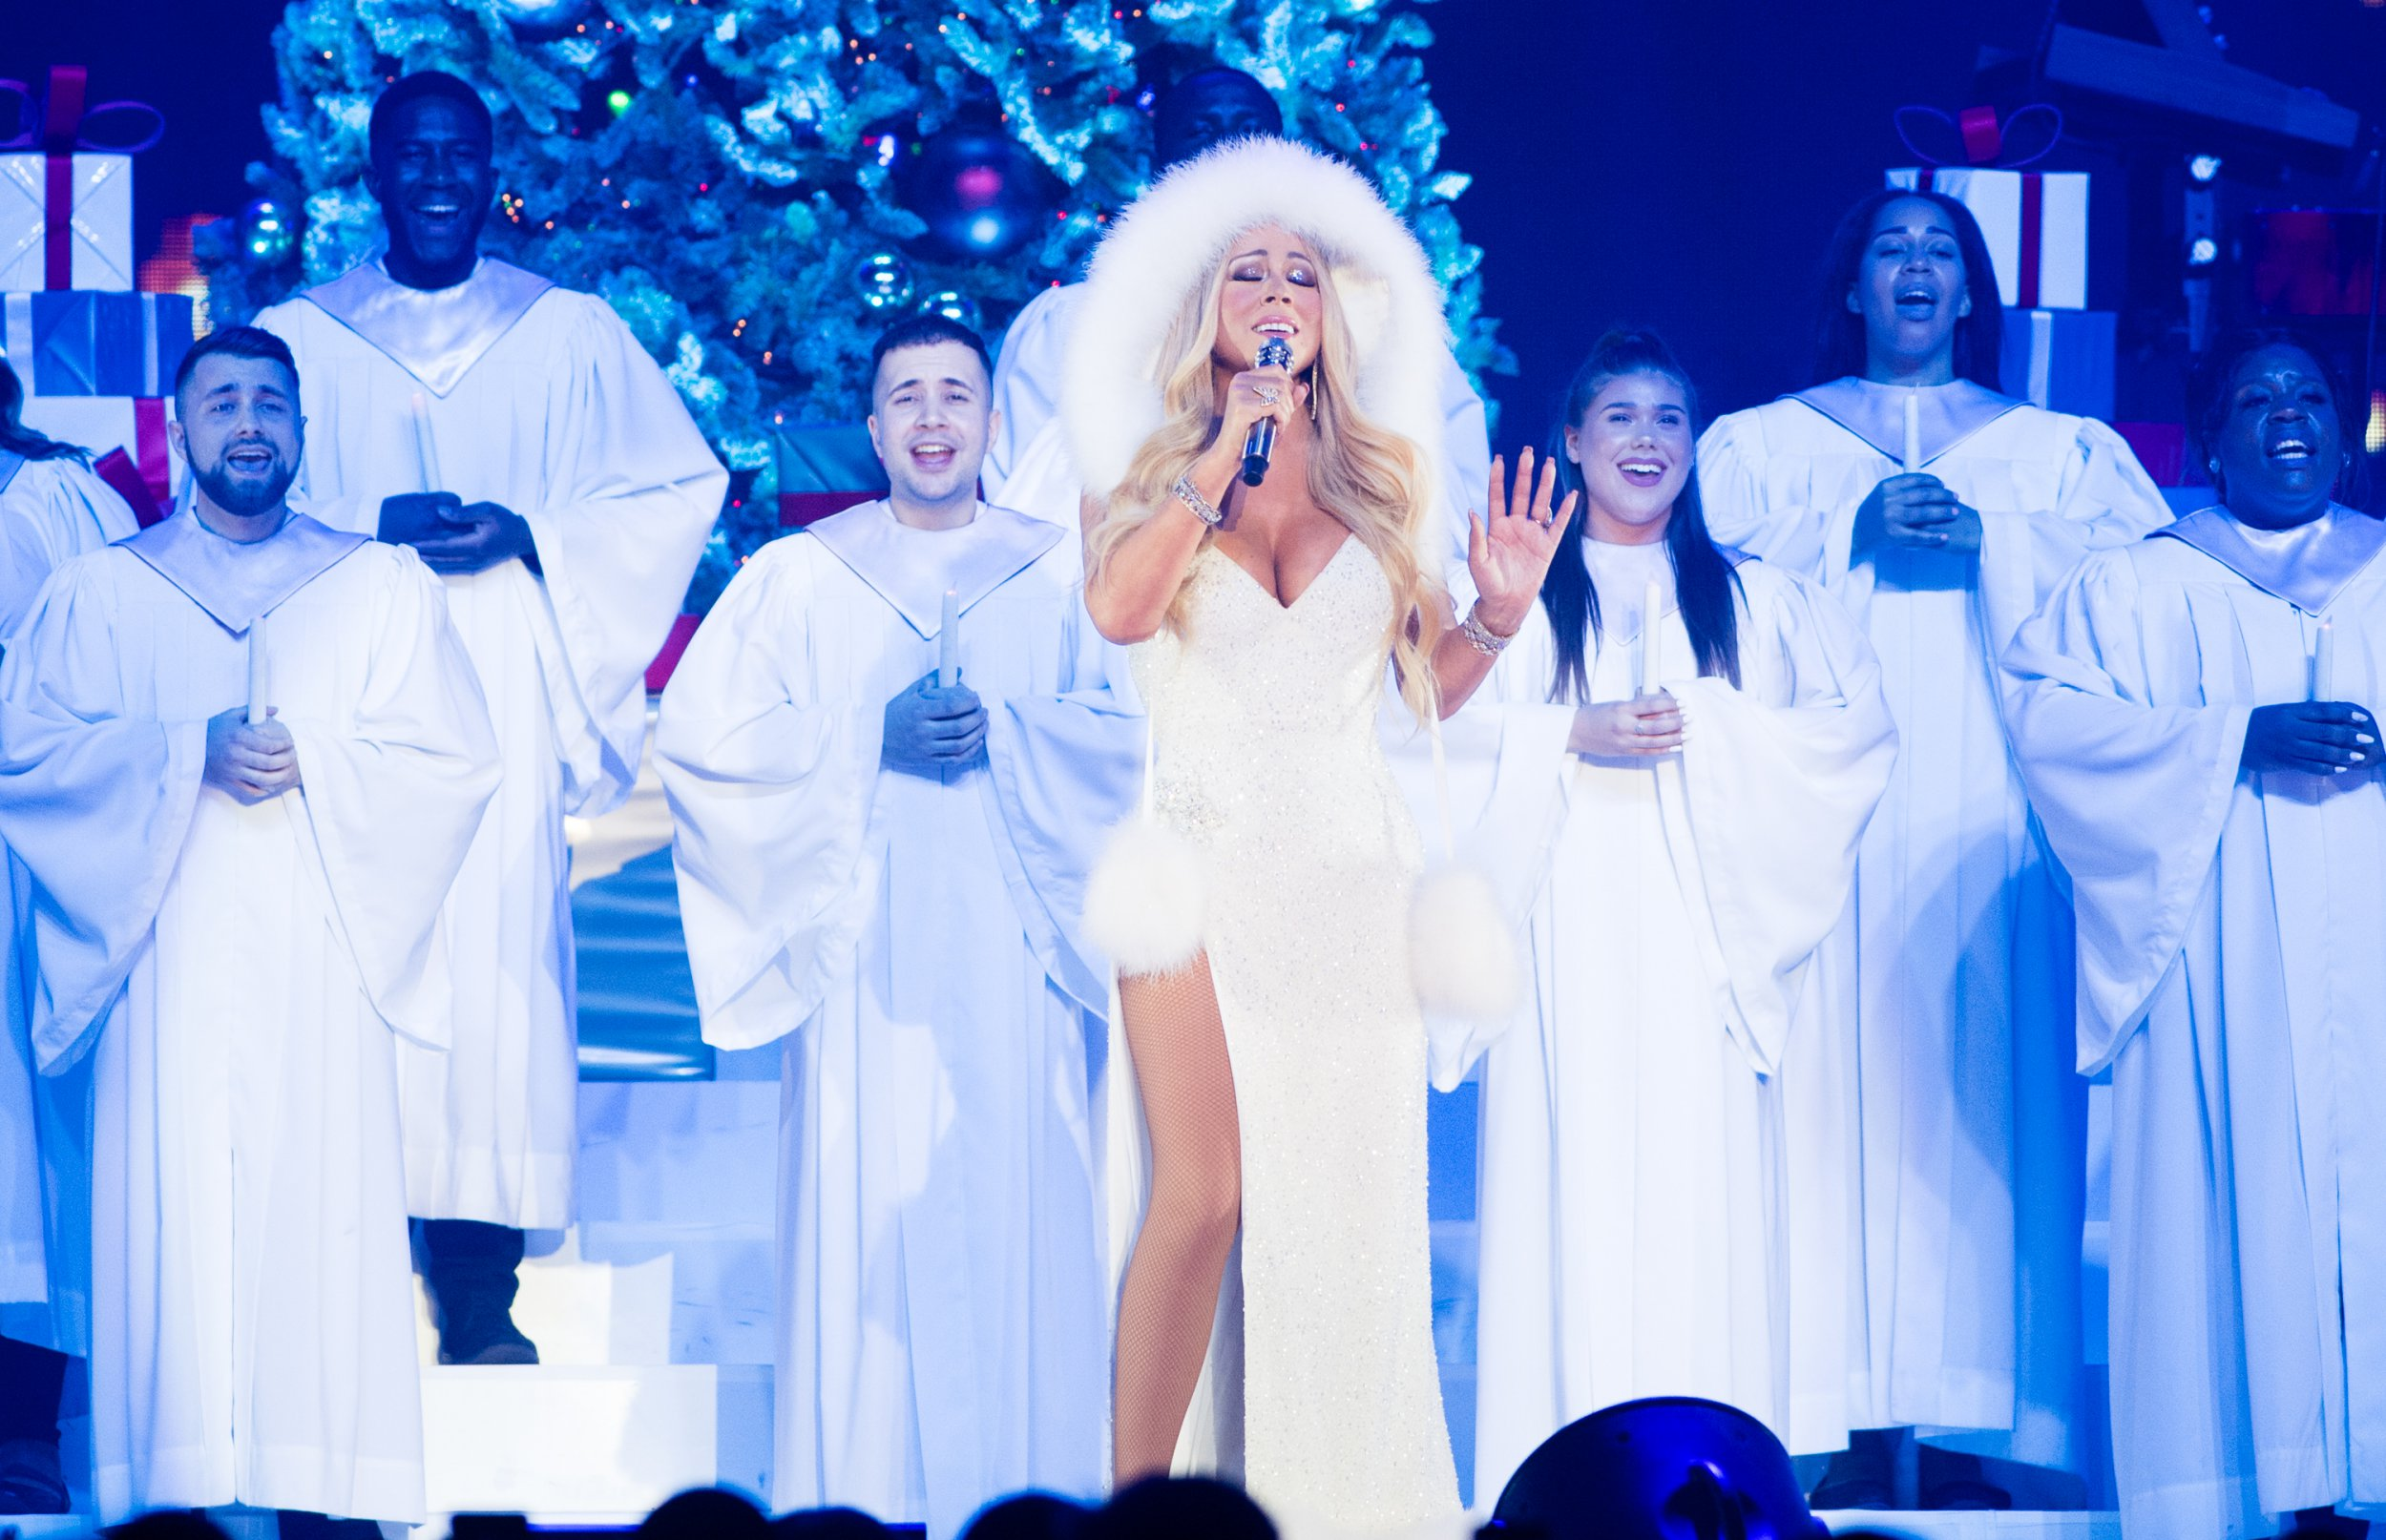 Mariah Carey listens to Christmas music '24 hours a day' over the holiday season